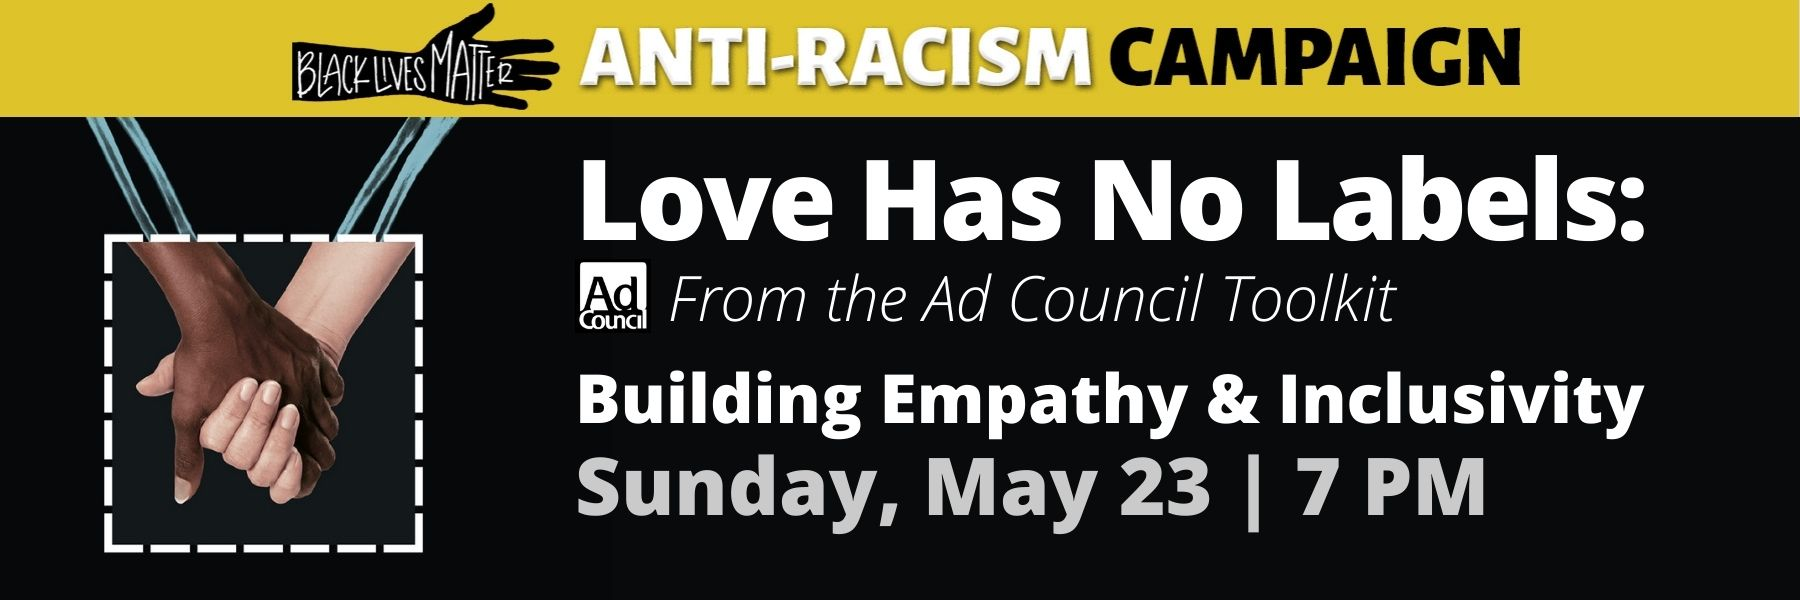 """<a href=""""https://www.barnerttemple.org/form/arc-program-registration-spring21""""                                     target=""""_blank"""">                                                                 <span class=""""slider_title"""">                                     Upcoming Anti-Racism Campaign Program                                </span>                                                                 </a>                                                                                                                                                                                       <span class=""""slider_description"""">LOVE HAS NO LABELS (from the Ad Council Toolkit):  BUILDING EMPATHY & INCLUSIVITY 